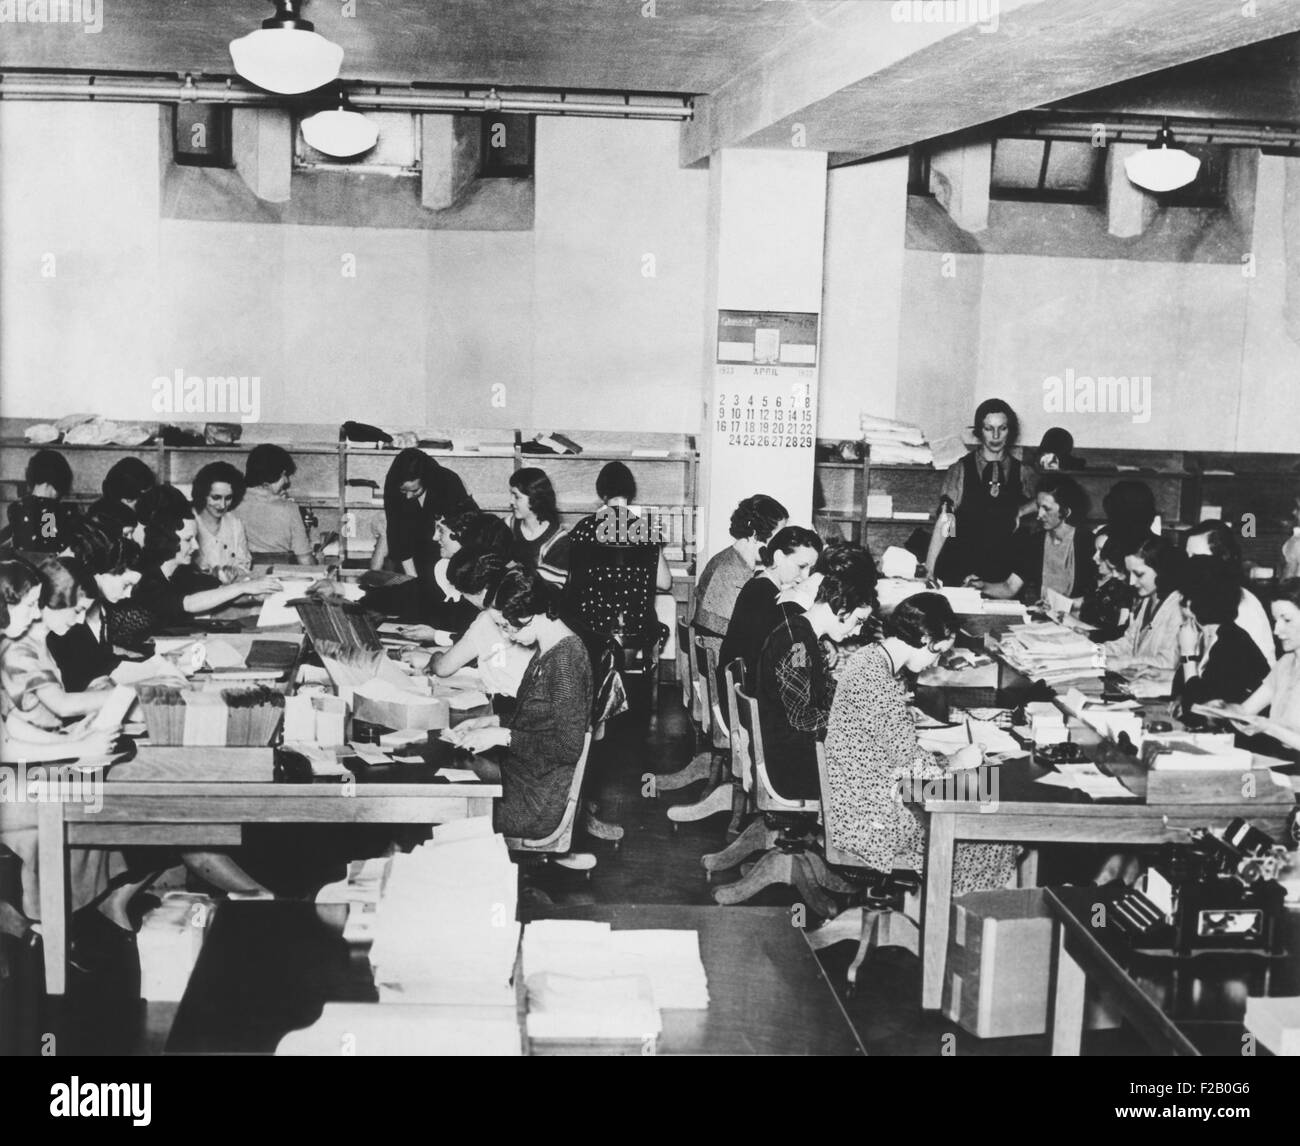 Charles Coughlin had a large staff to open and sort 80,000 letters he received weekly. April 1933. (CSU_2015_9_1141) - Stock Image